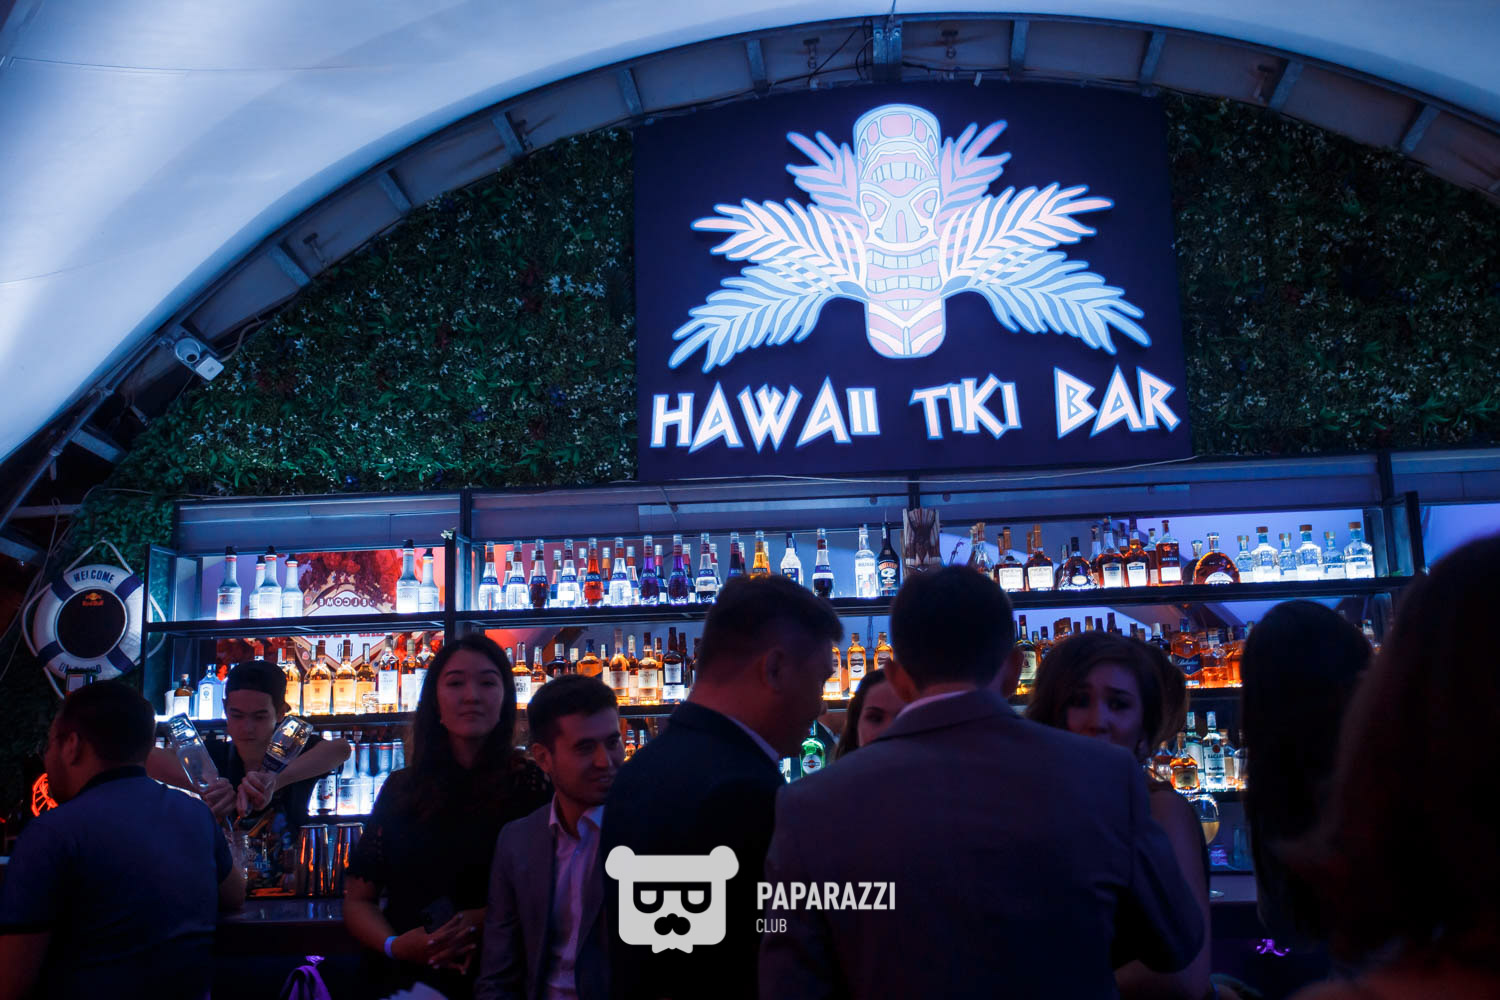 Hawaii tiki bar